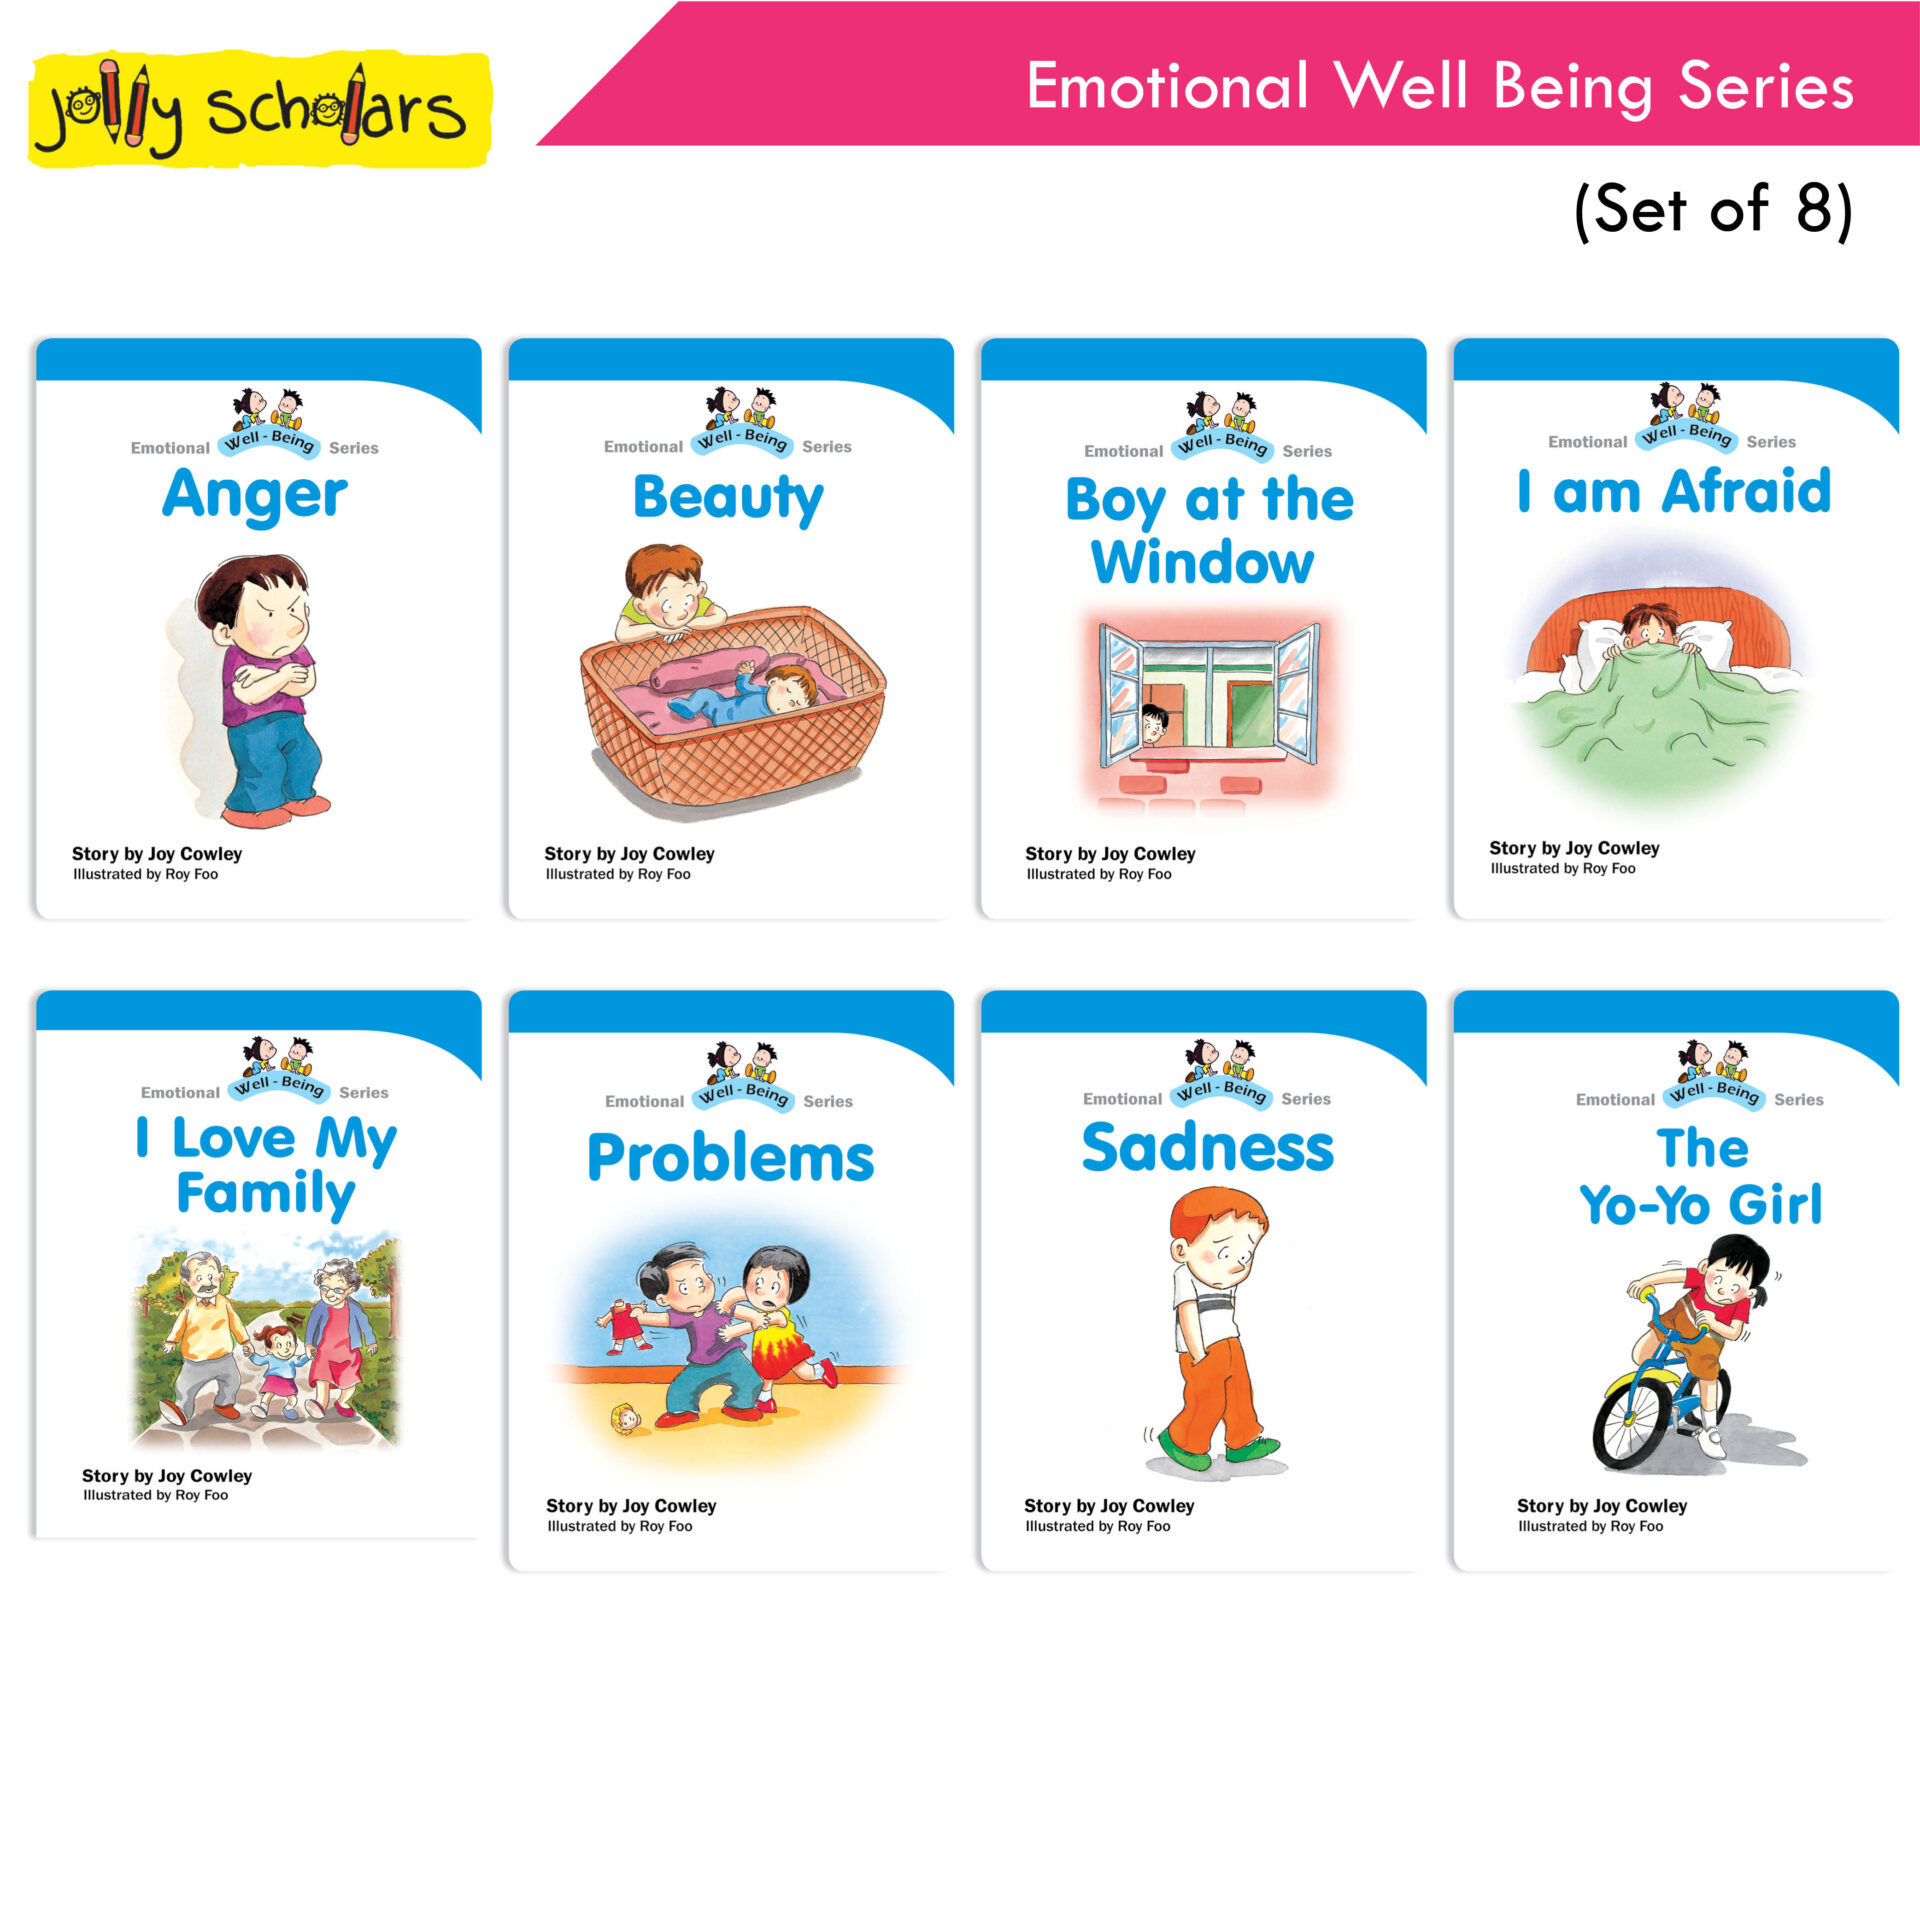 Jolly Scholars Emotional Well Being Series Set of 8 1